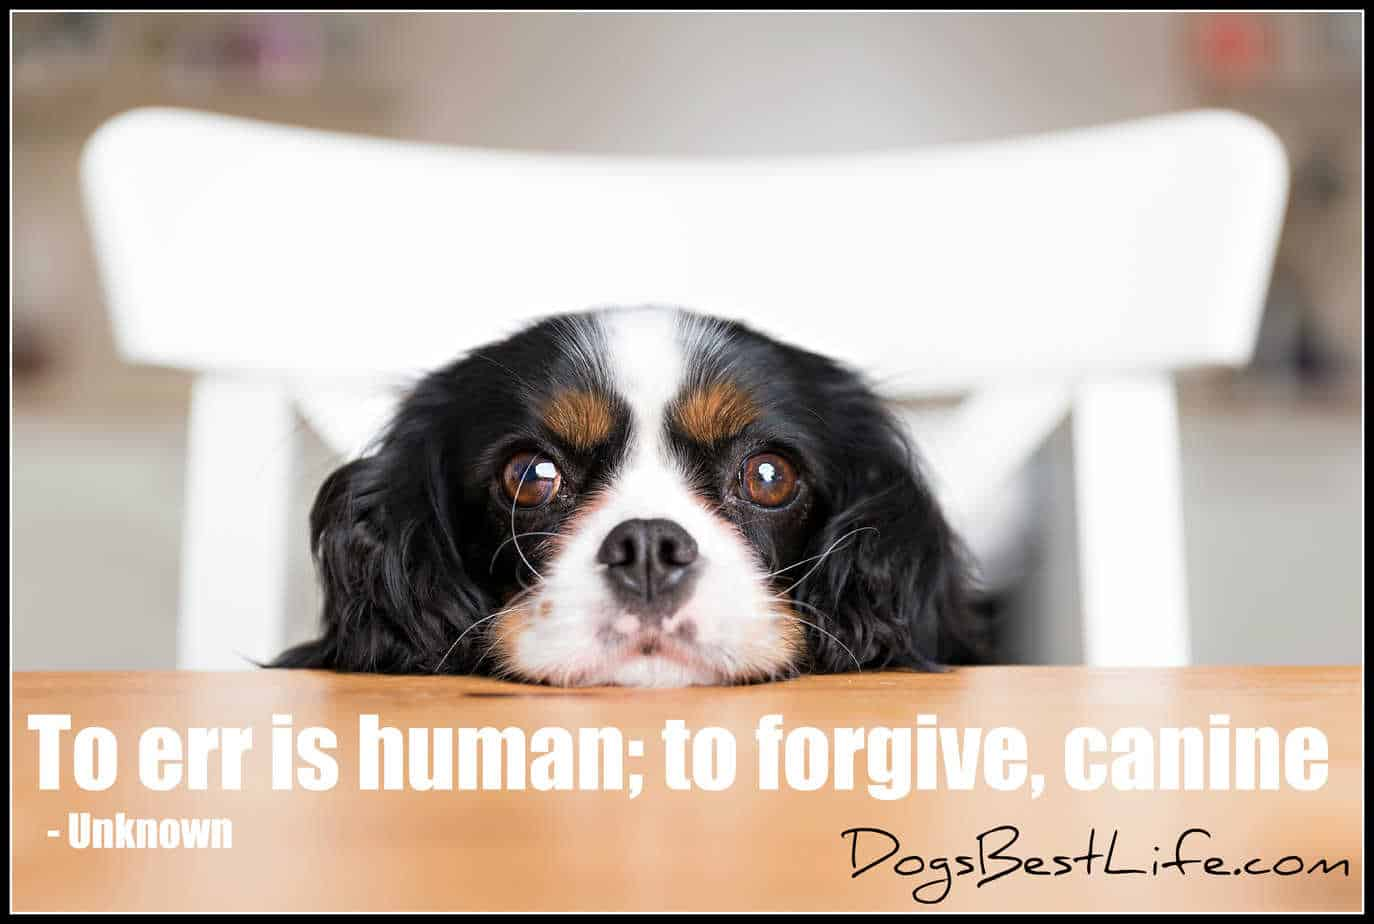 to forgive, canine